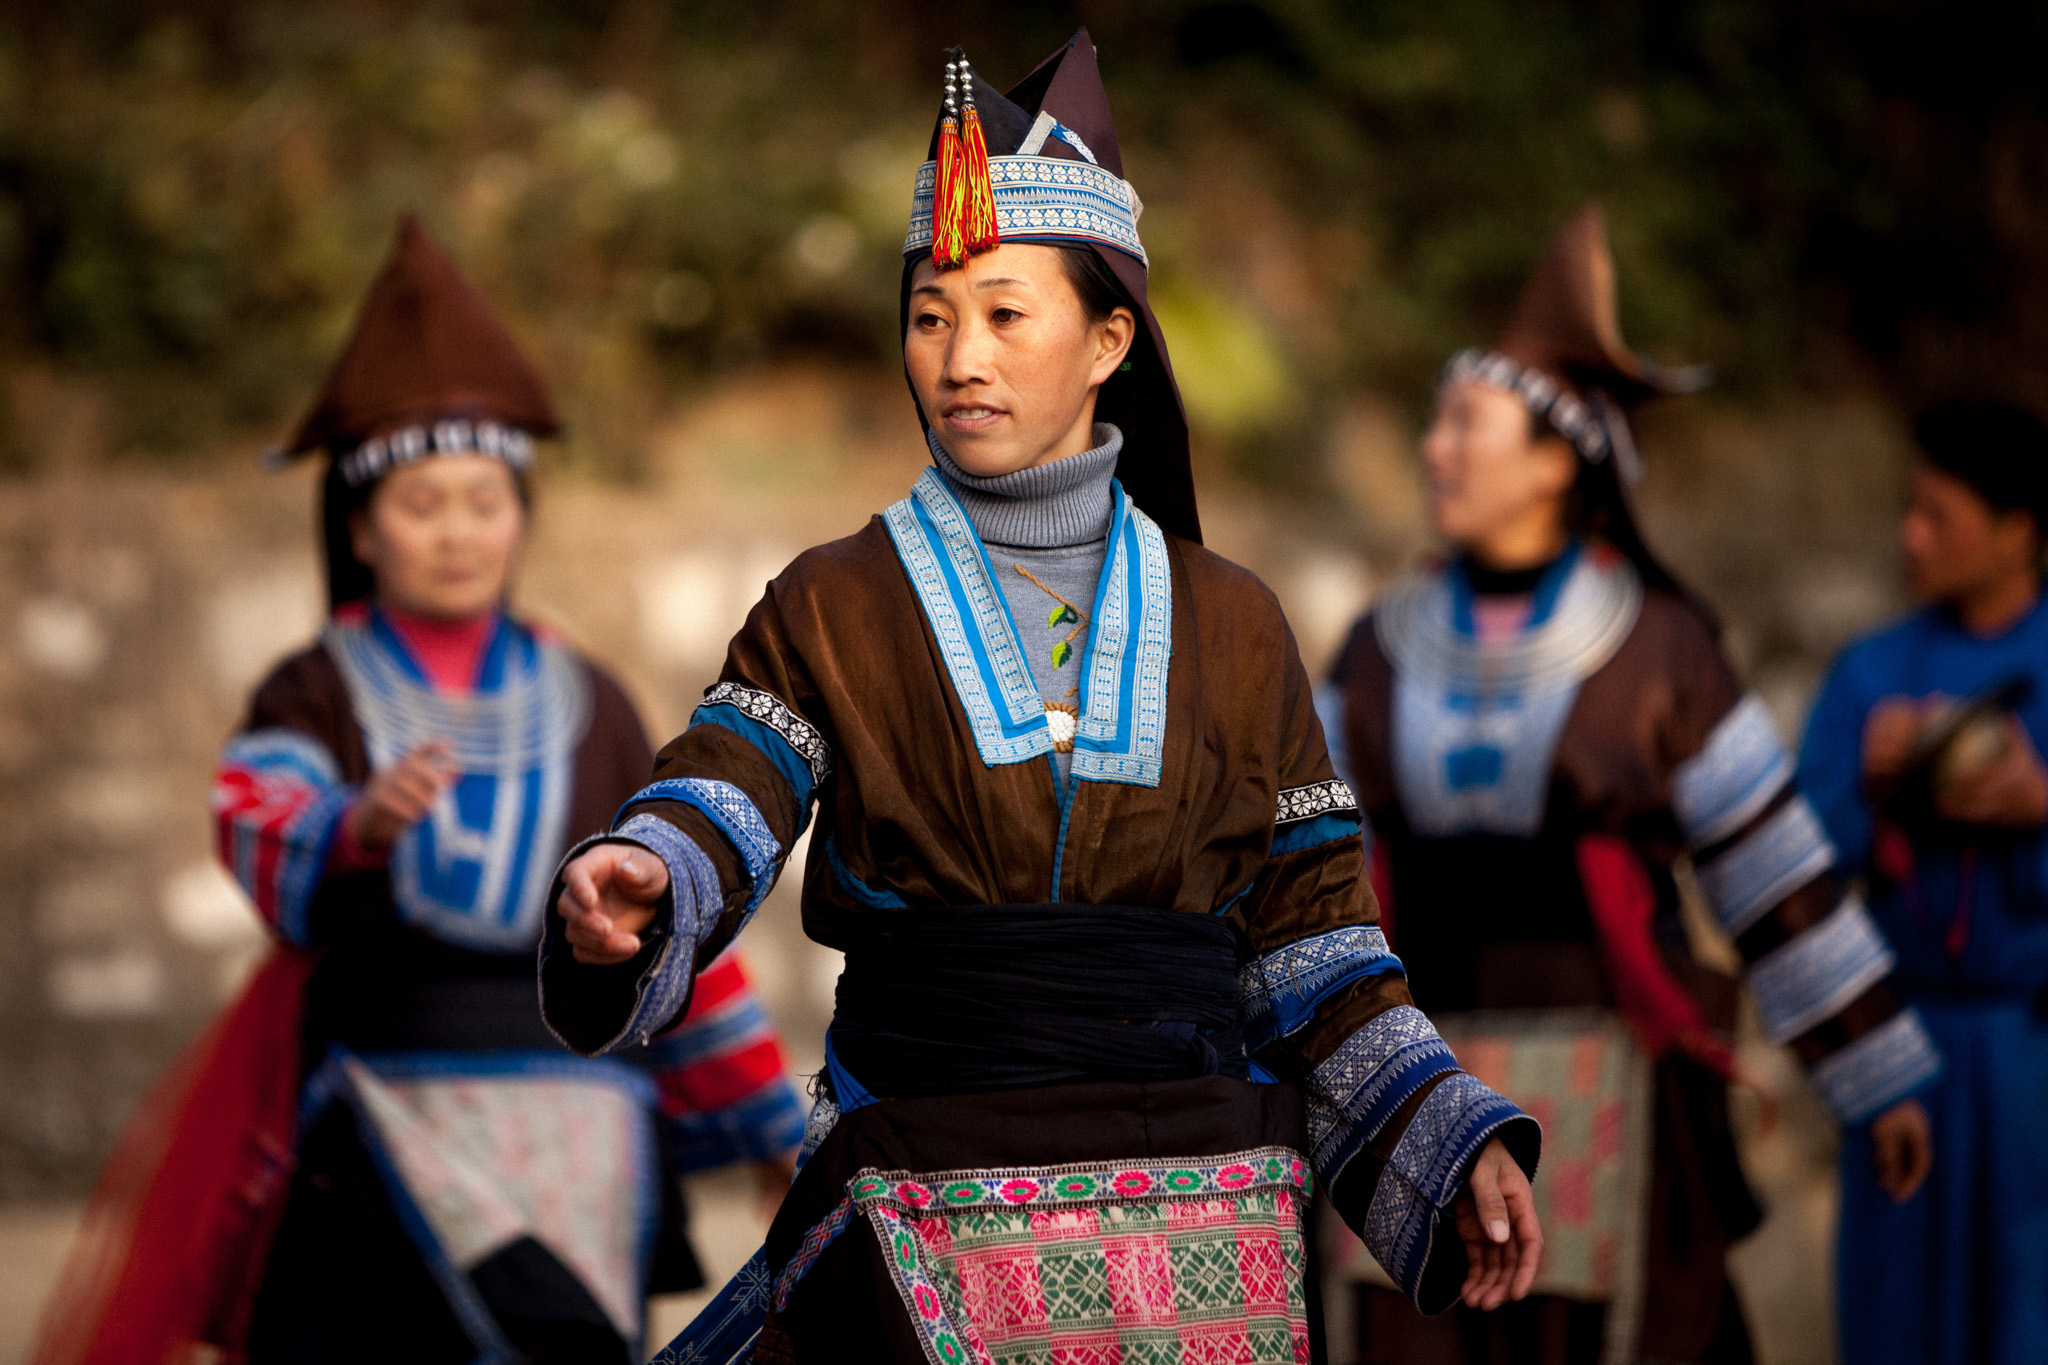 Miao women performing a traditional folk dance to welcome travellers to the village.